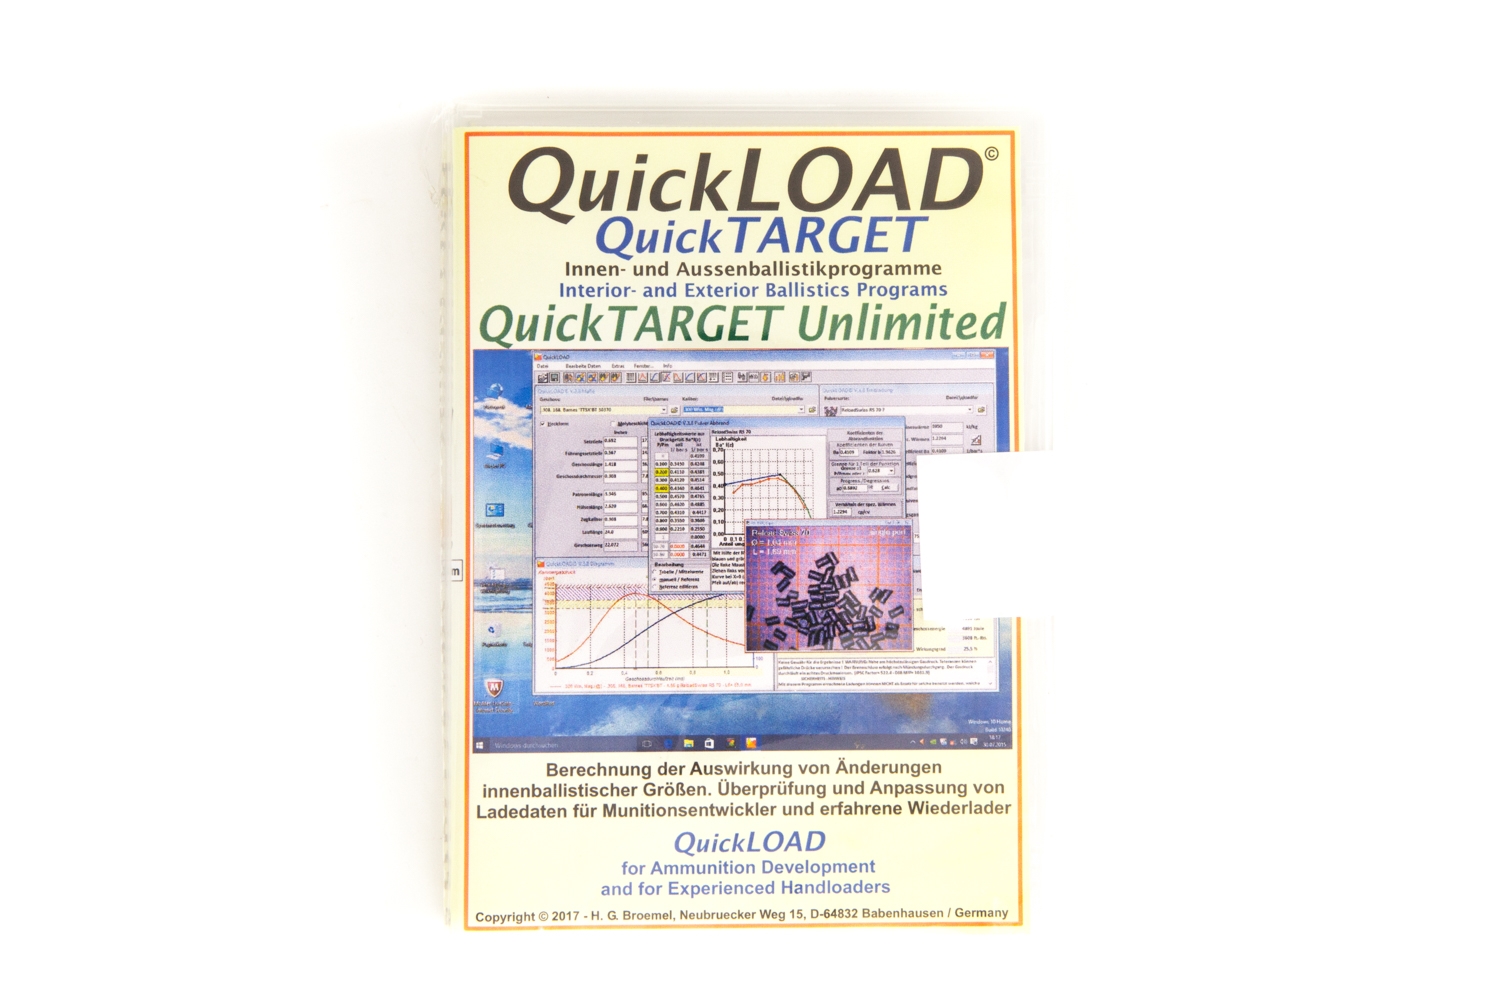 Quick Load Ballistik Software